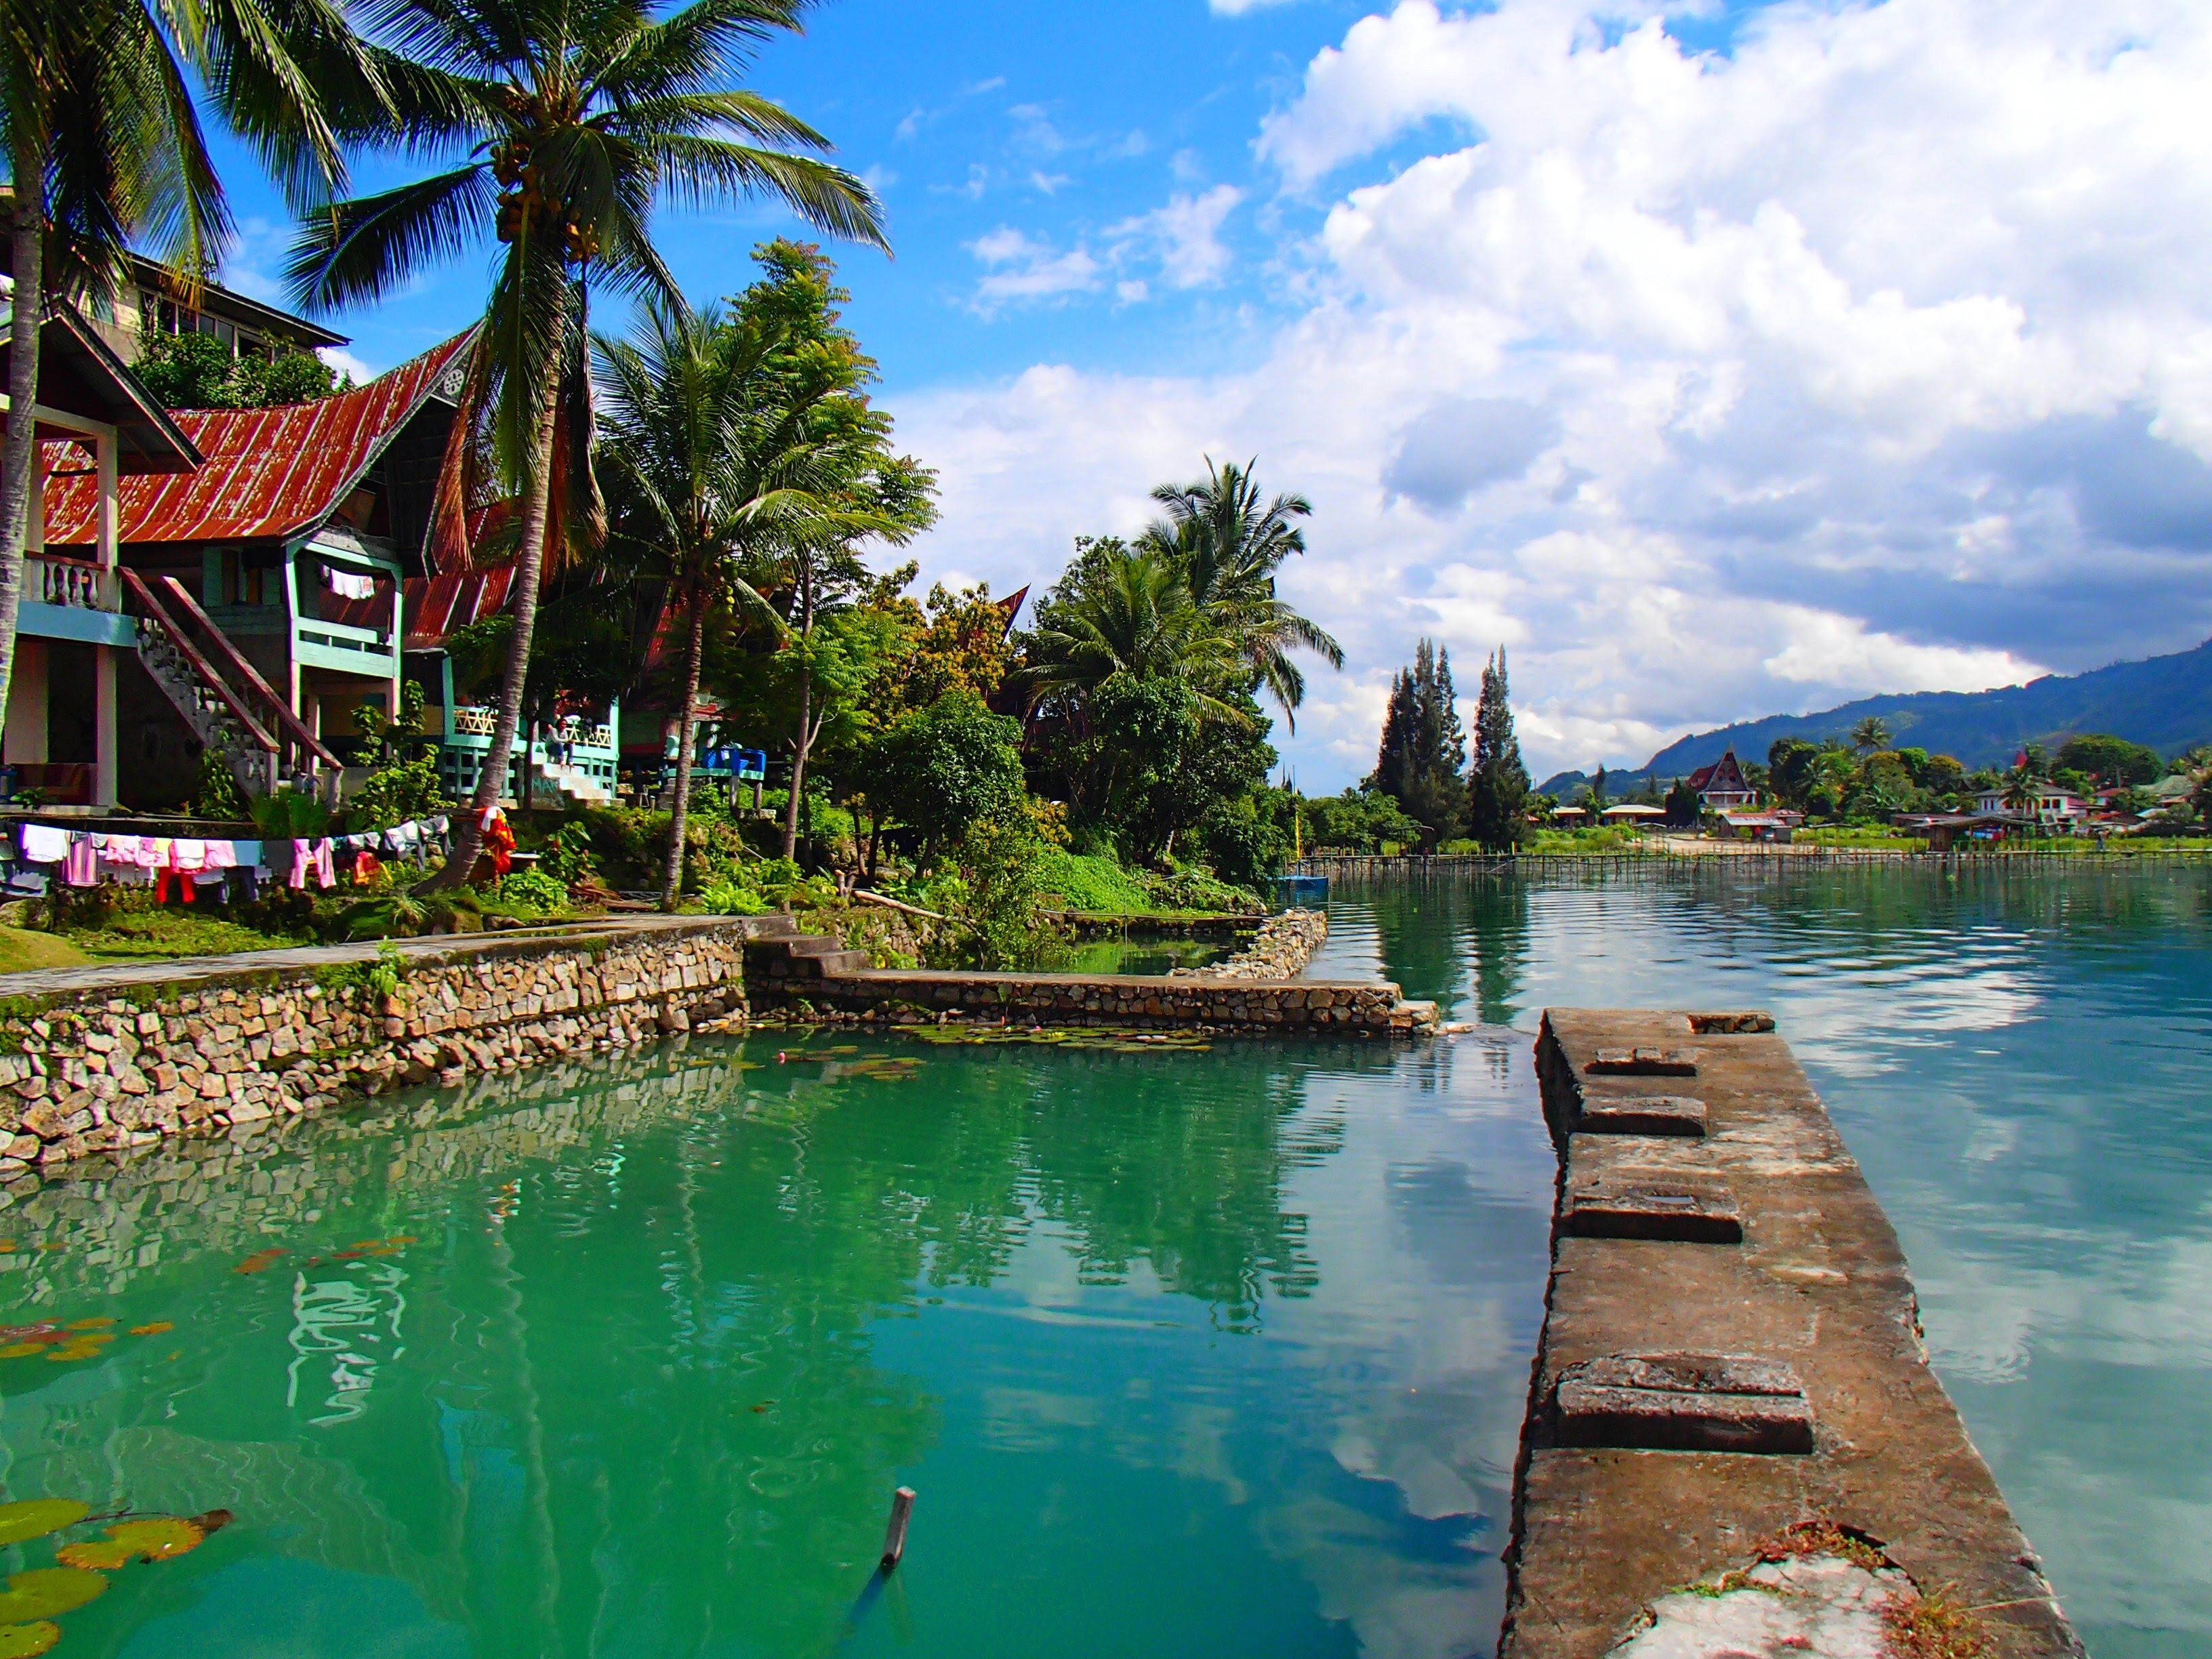 Lake Toba, Sumatra, Indonesien